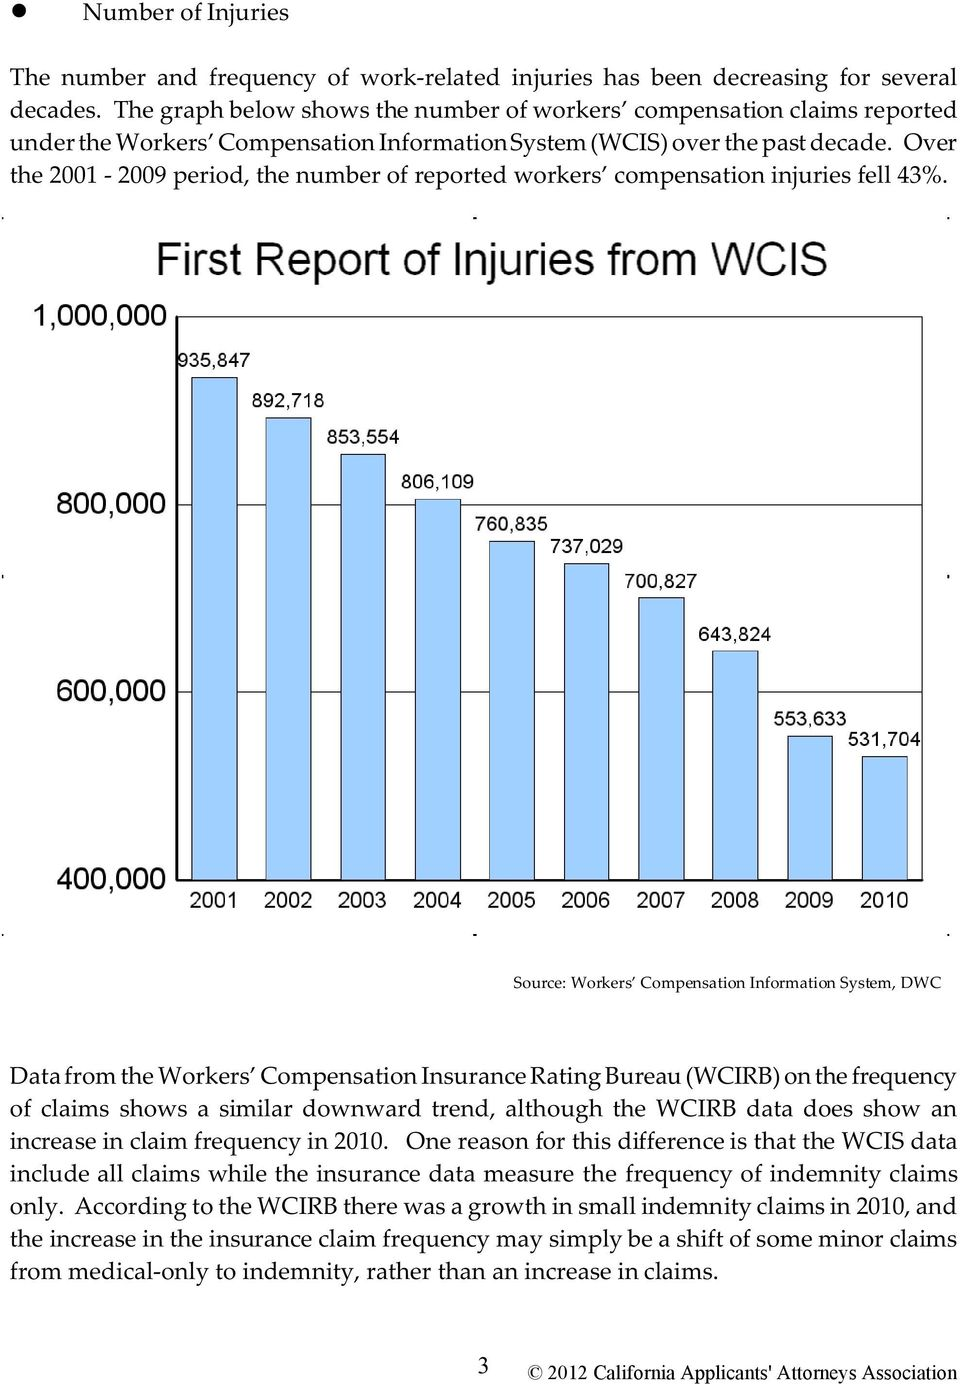 Over the 2001-2009 period, the number of reported workers compensation injuries fell 43%.